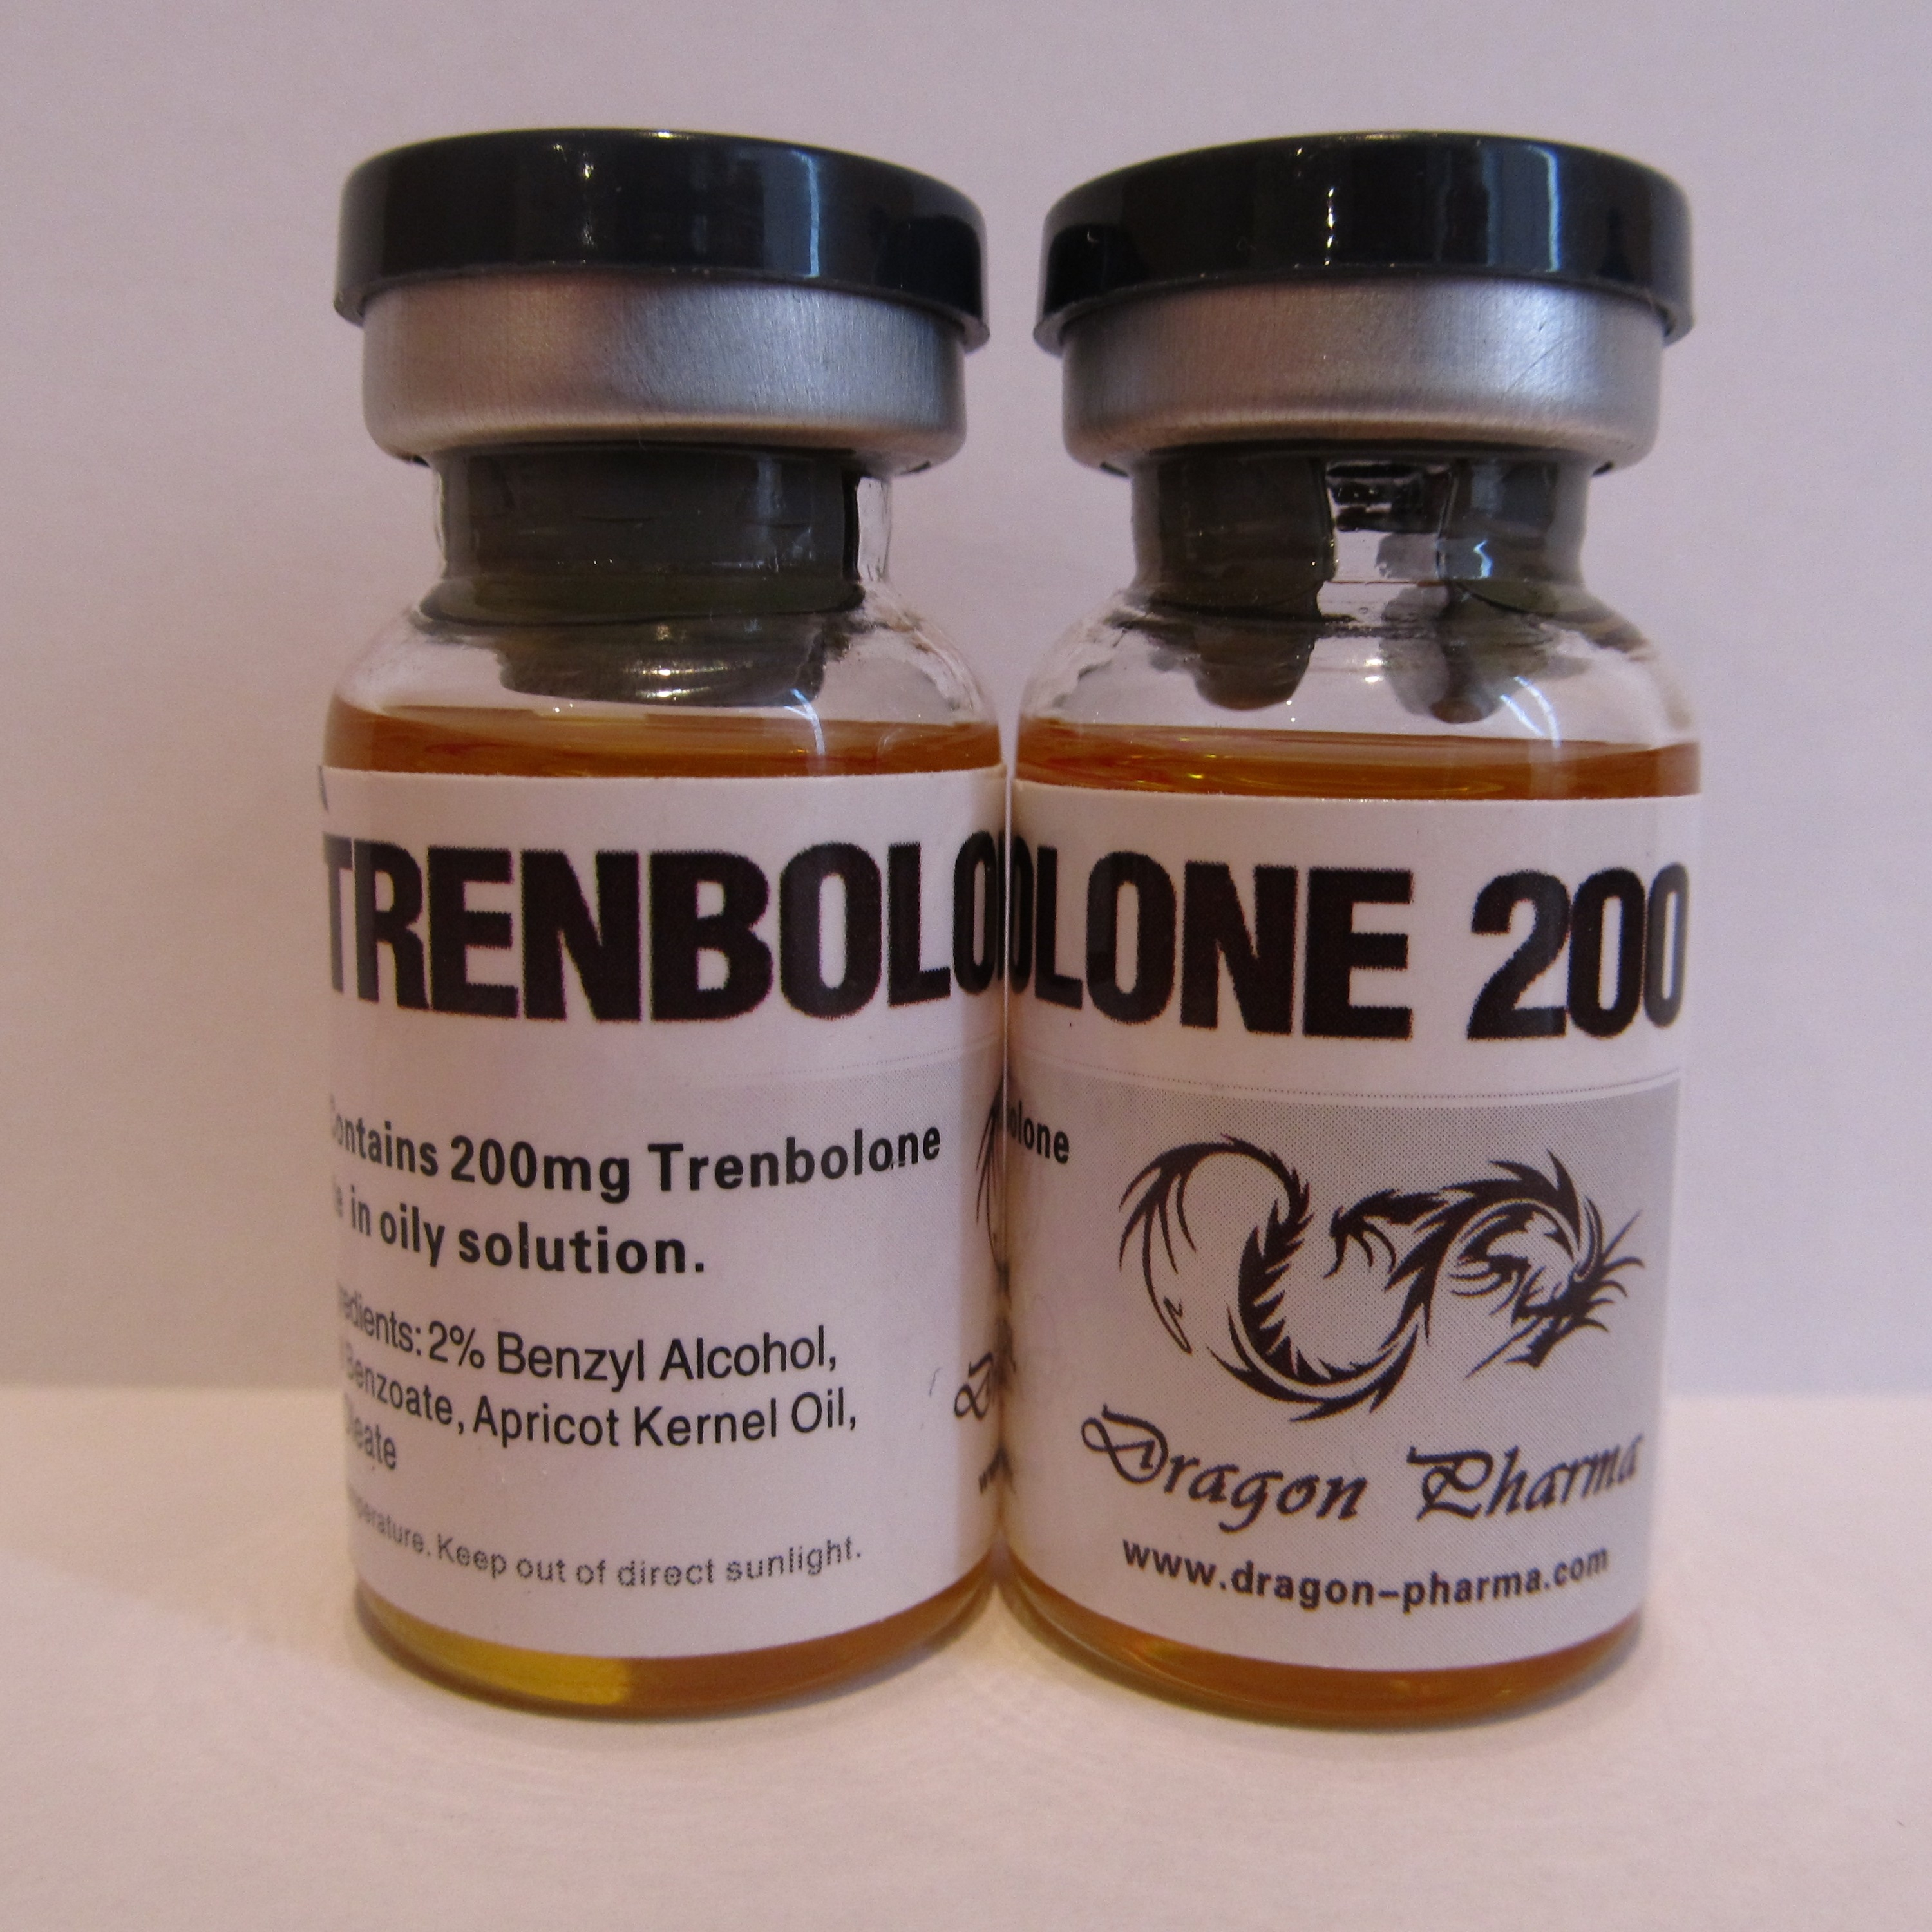 Trenbolone 200 Dragon Pharma